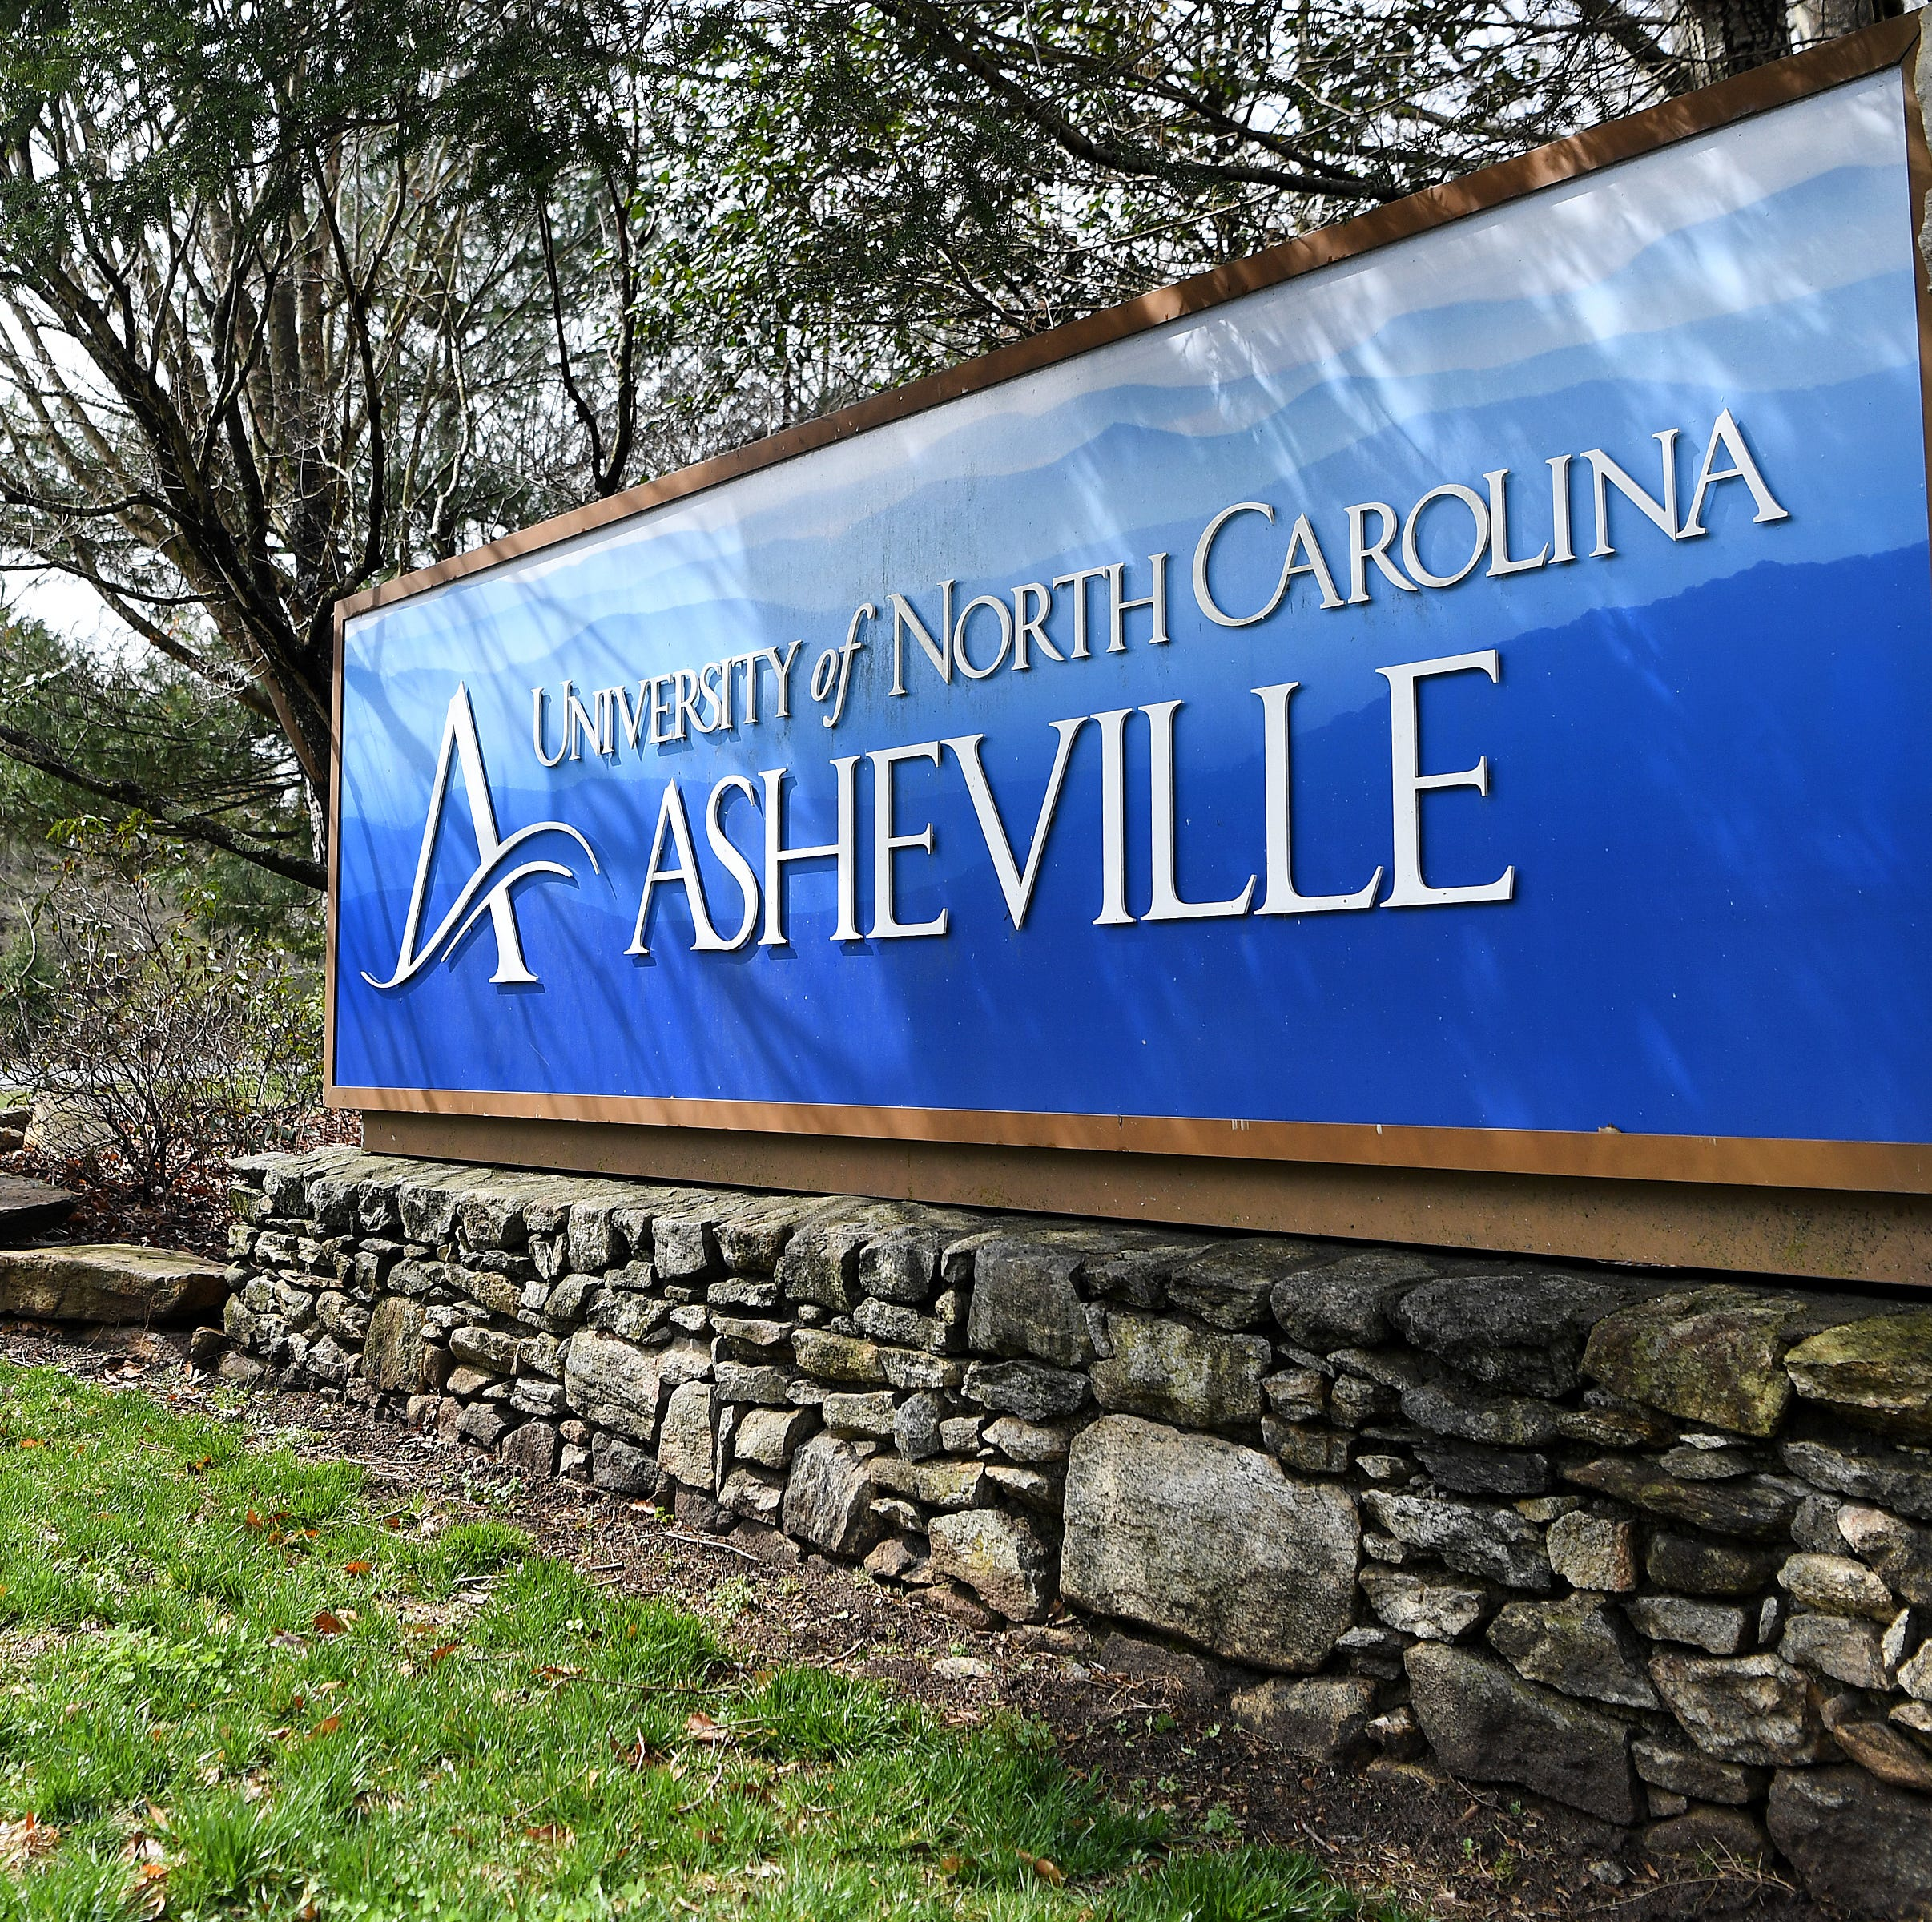 Expert: UNC Asheville emergency meeting on Murdock's honorary degree was illegal